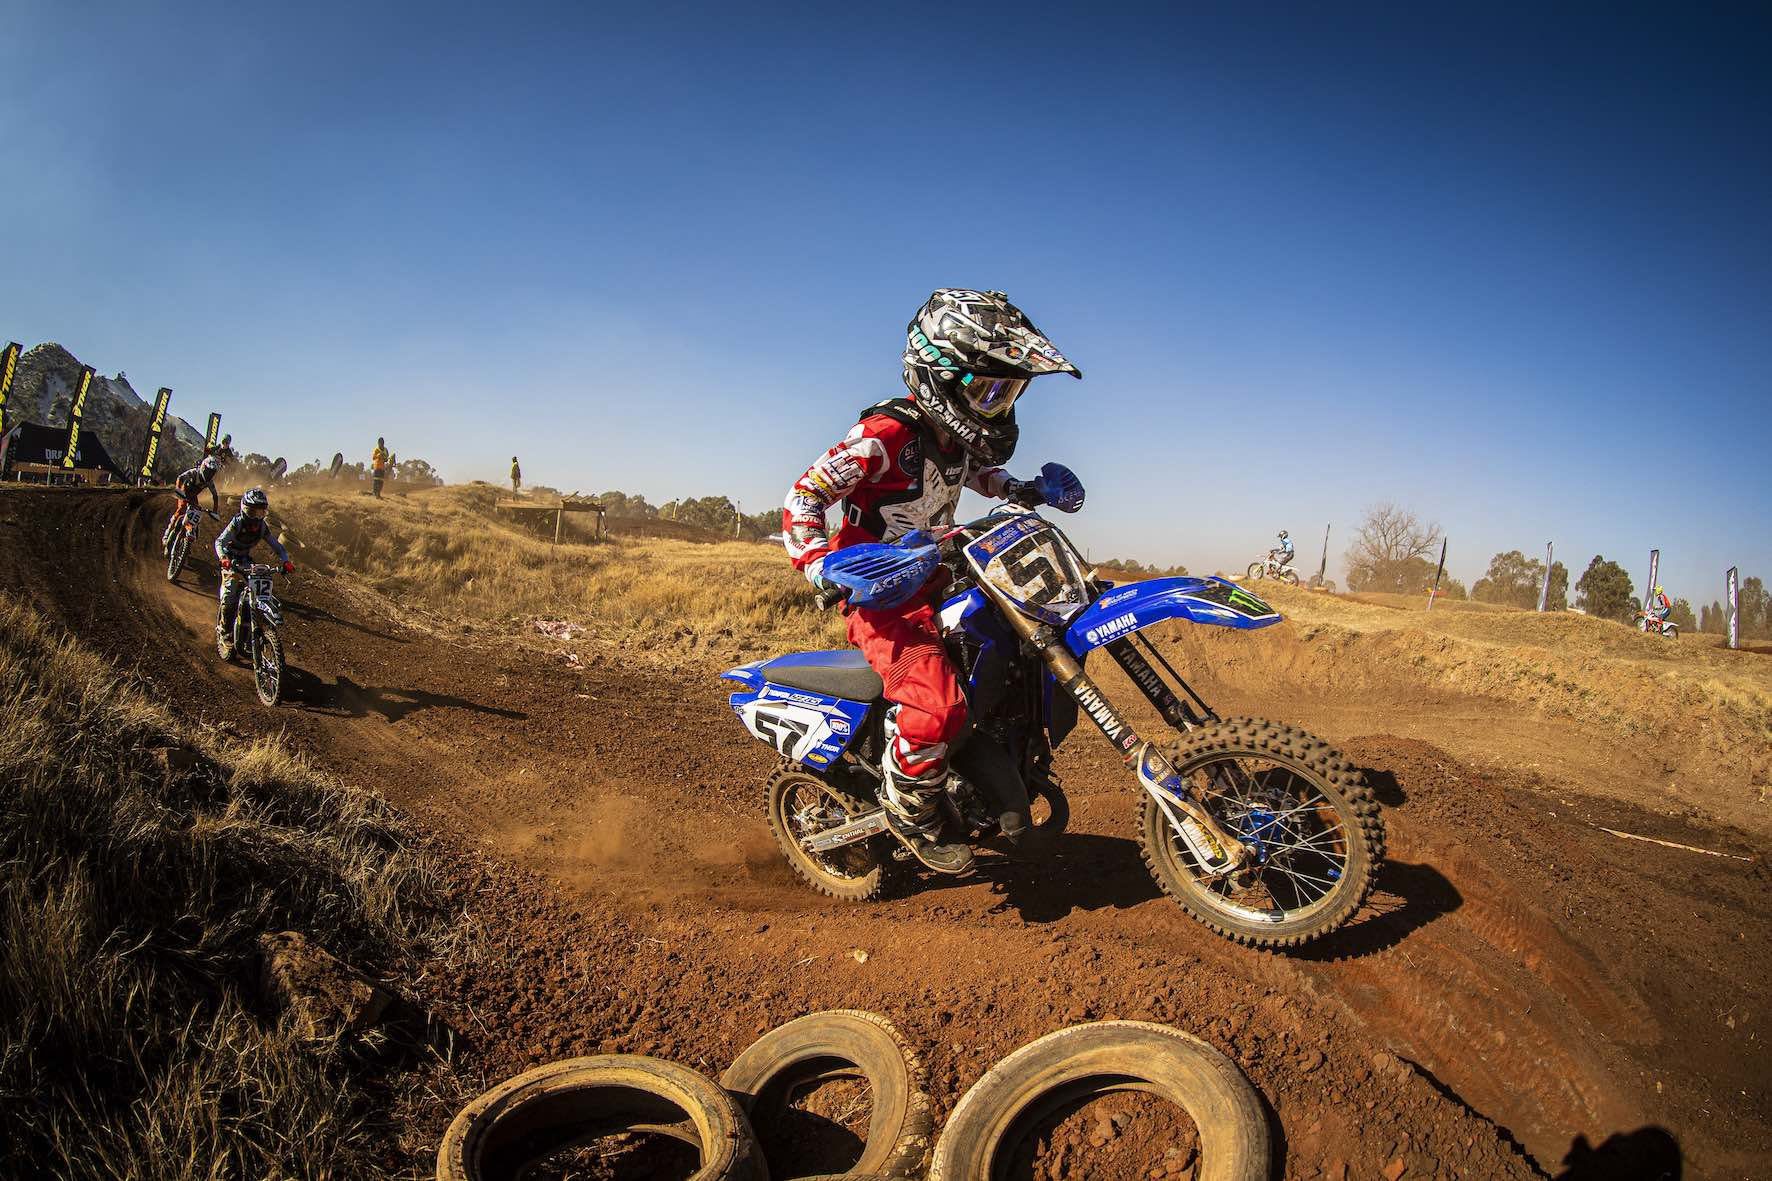 James Thompson racing Round 4 of the 2019 SA Motocross Nationals at Dirt Bronco